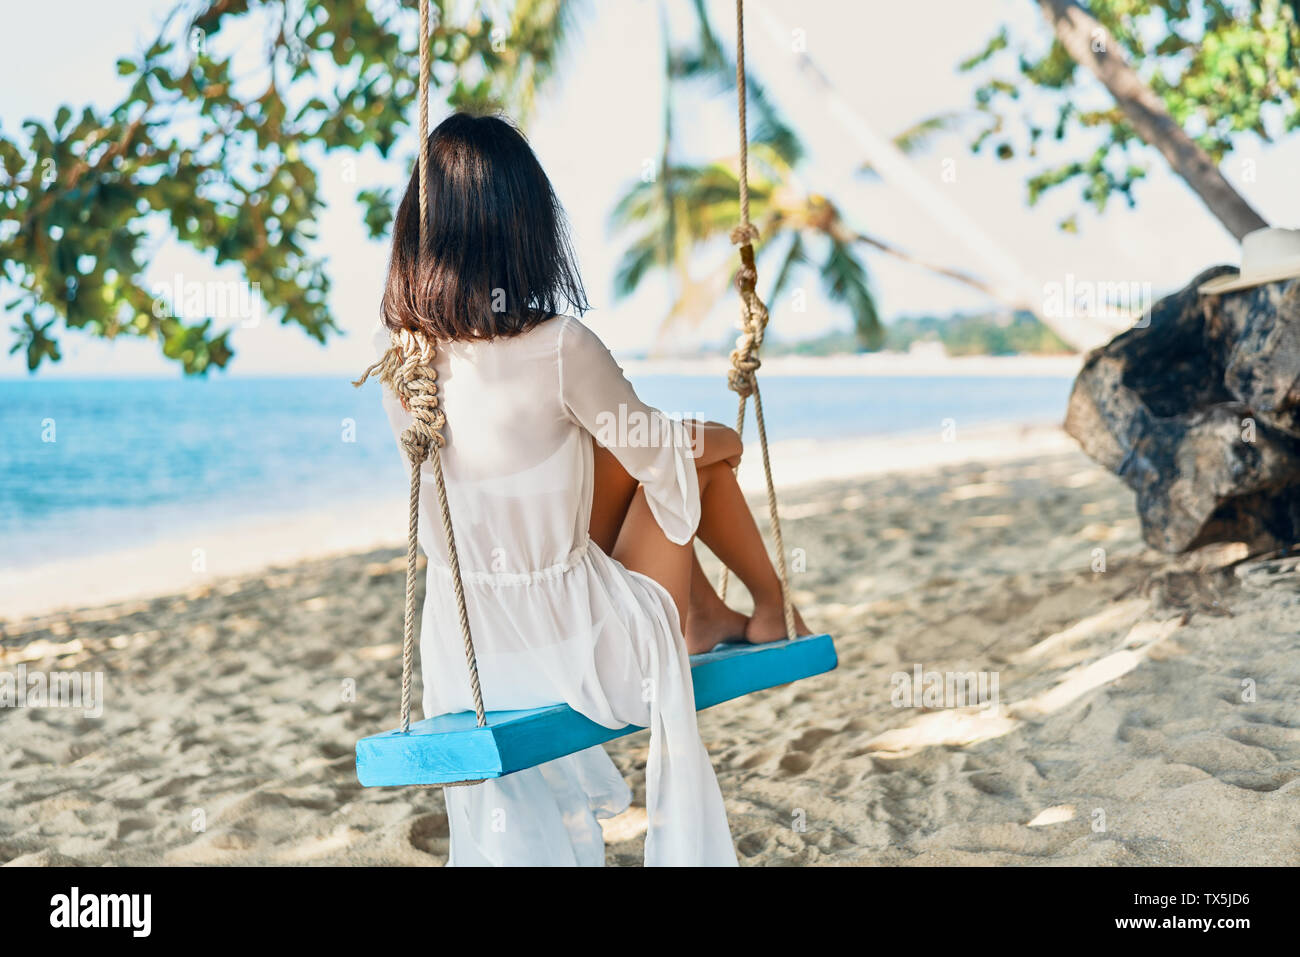 Back view of happy woman relax on swing on beautiful paradises beach. Relax and vacation concept - Stock Image